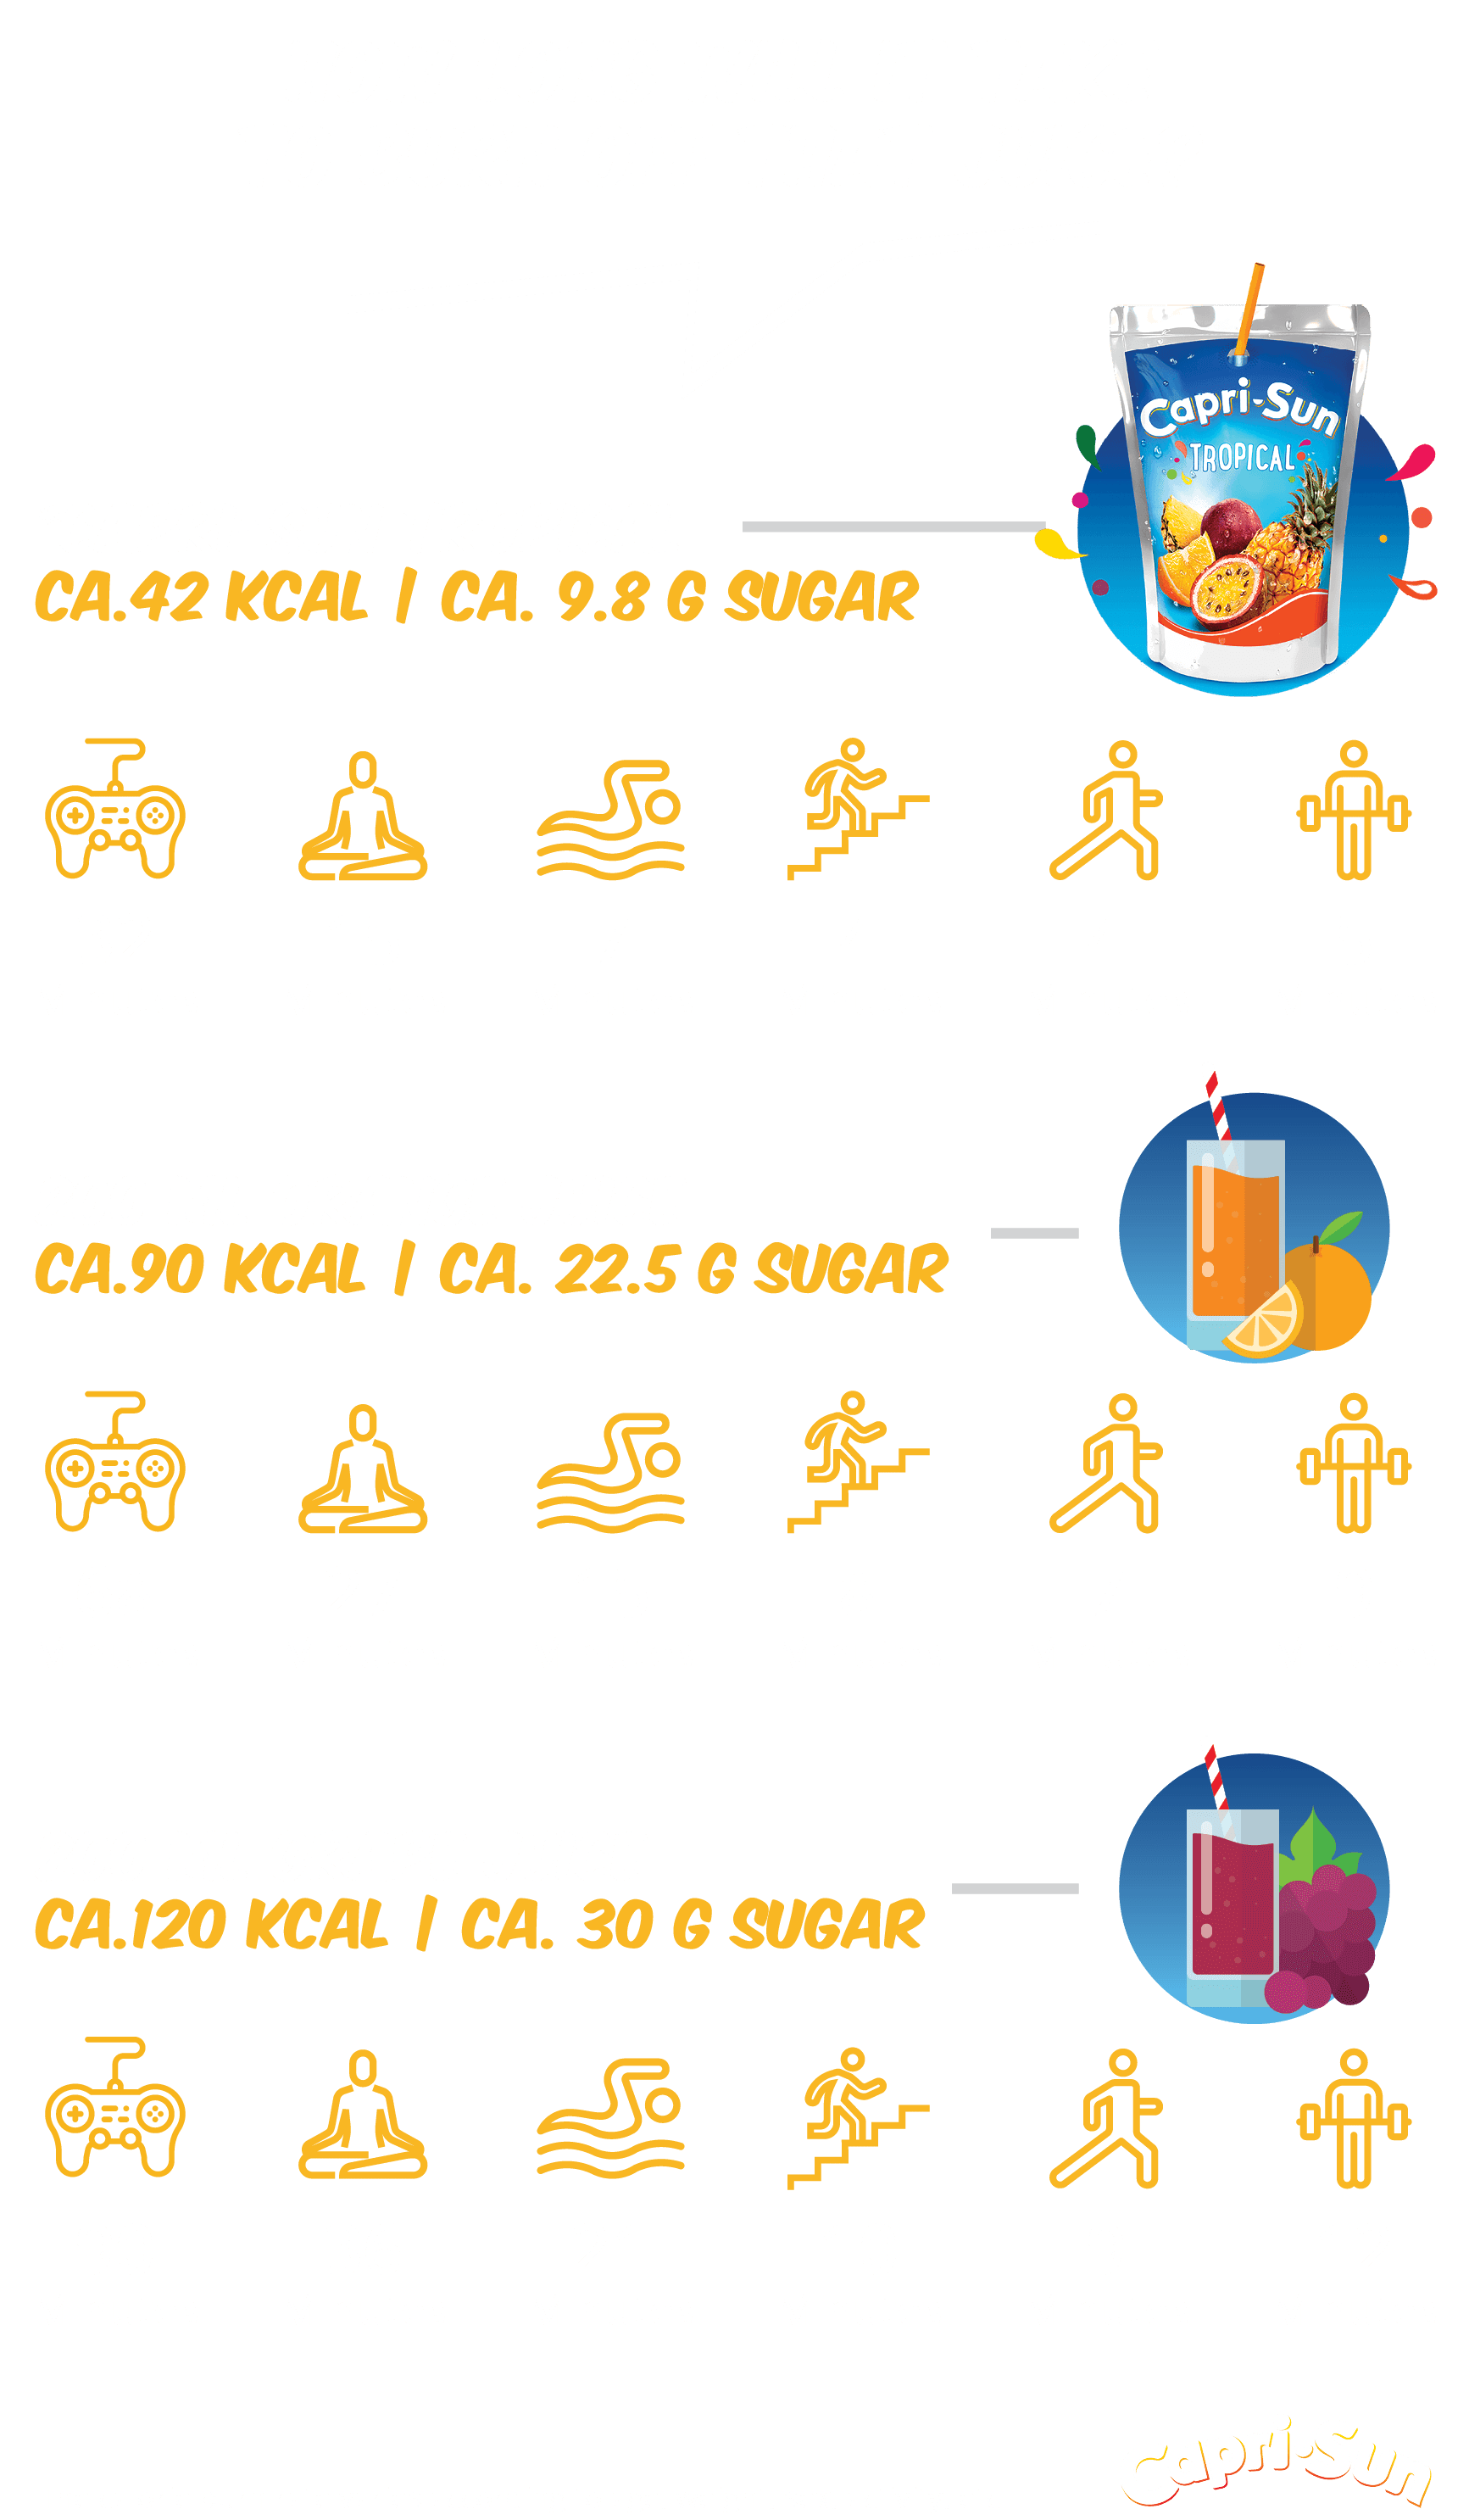 graphic showing the comparison of time needed for different activities daylife to burn off calories of Capri-sun, orange juice or grape juice.